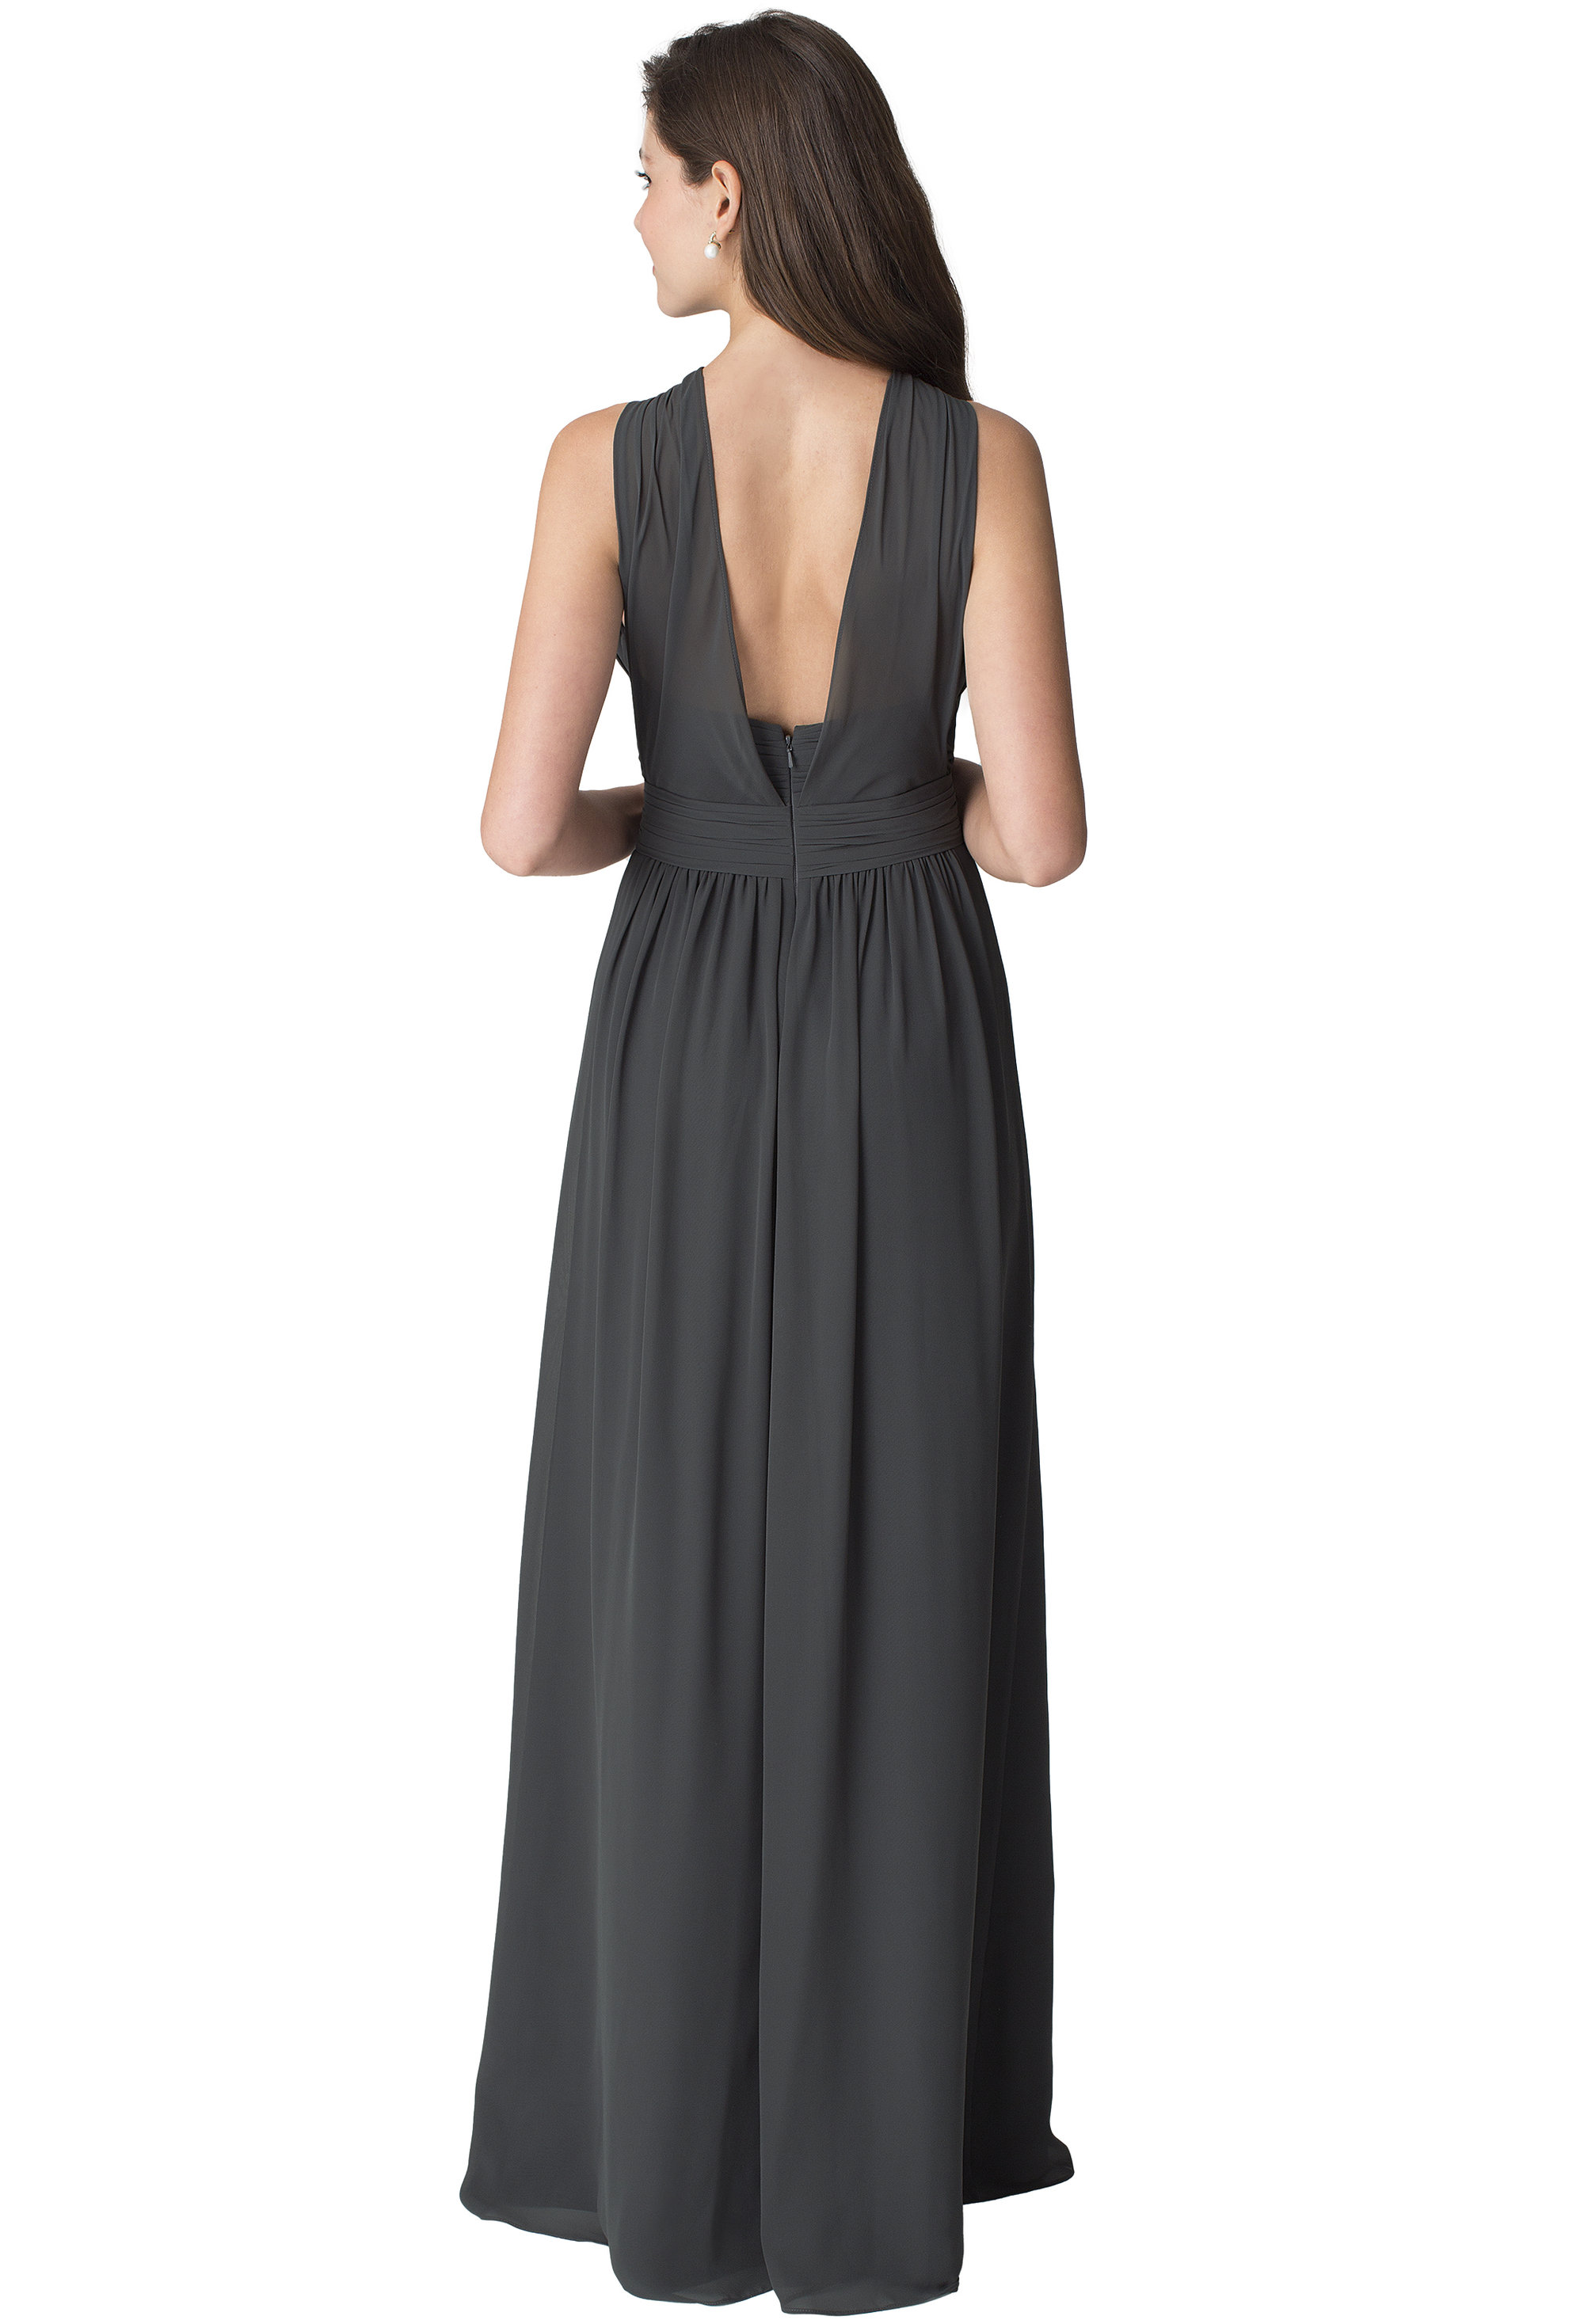 Bill Levkoff PEACH Chiffon Sleeveless A-line gown, $210.00 Back